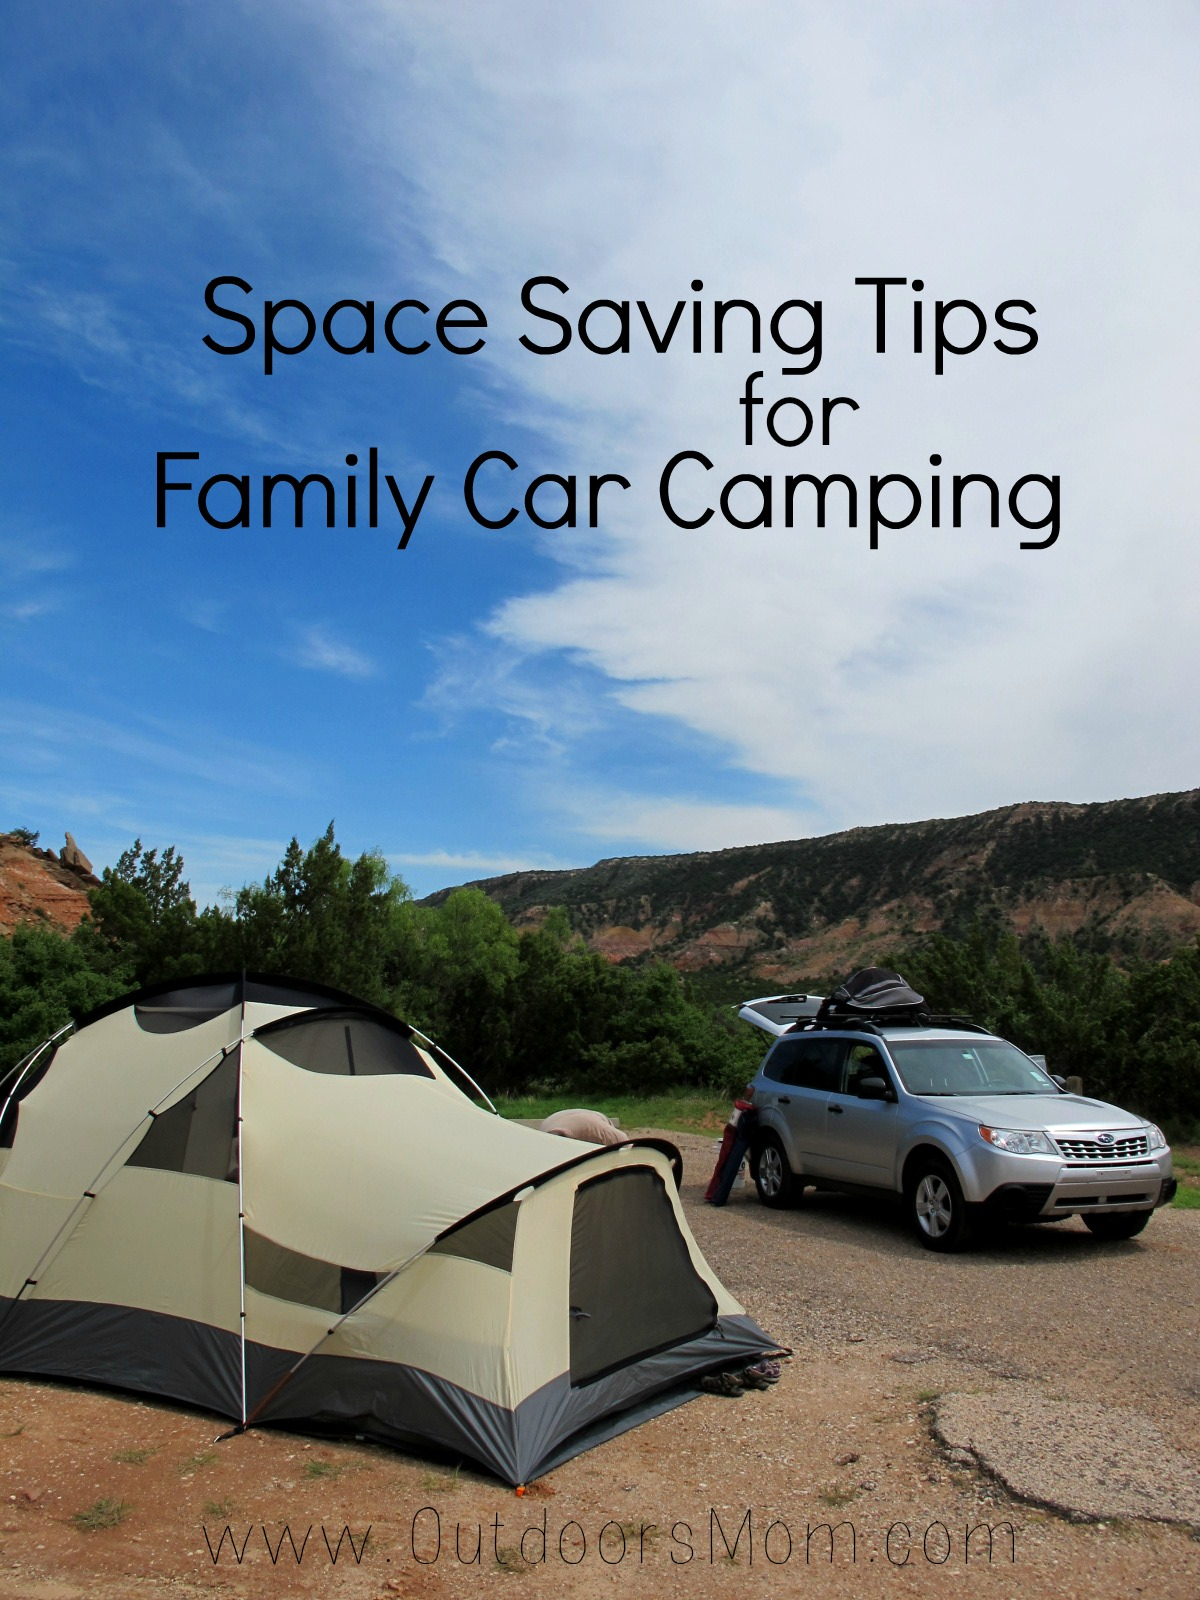 8 Space Saving Tips For Family Car Camping